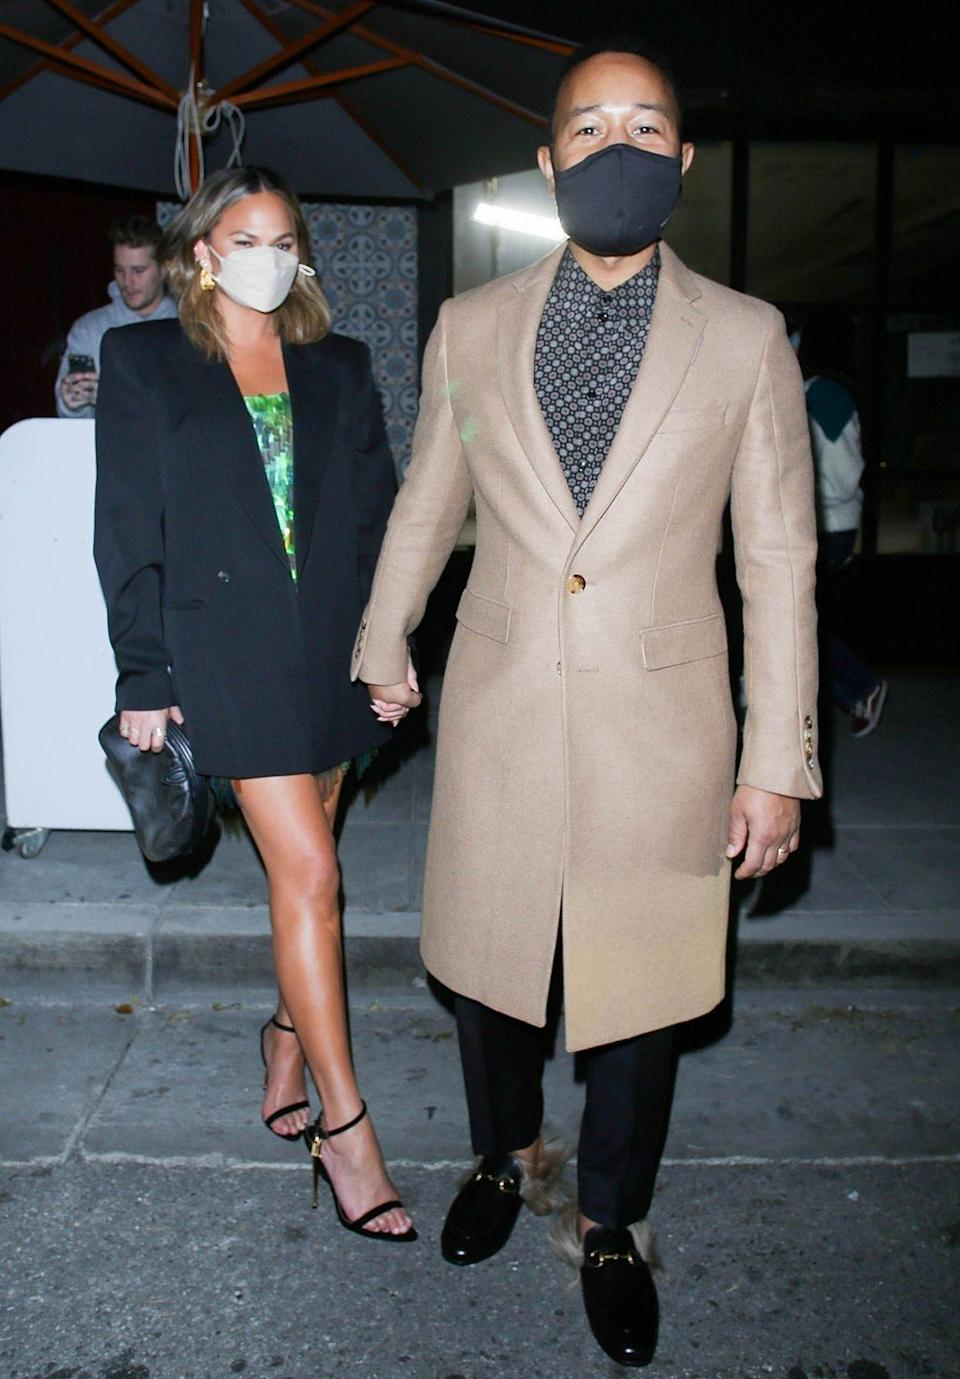 <p>Chrissy Teigen and John Legend get all dolled up for a romantic date night at Sapgos Restaurant late Sunday night in L.A.</p>